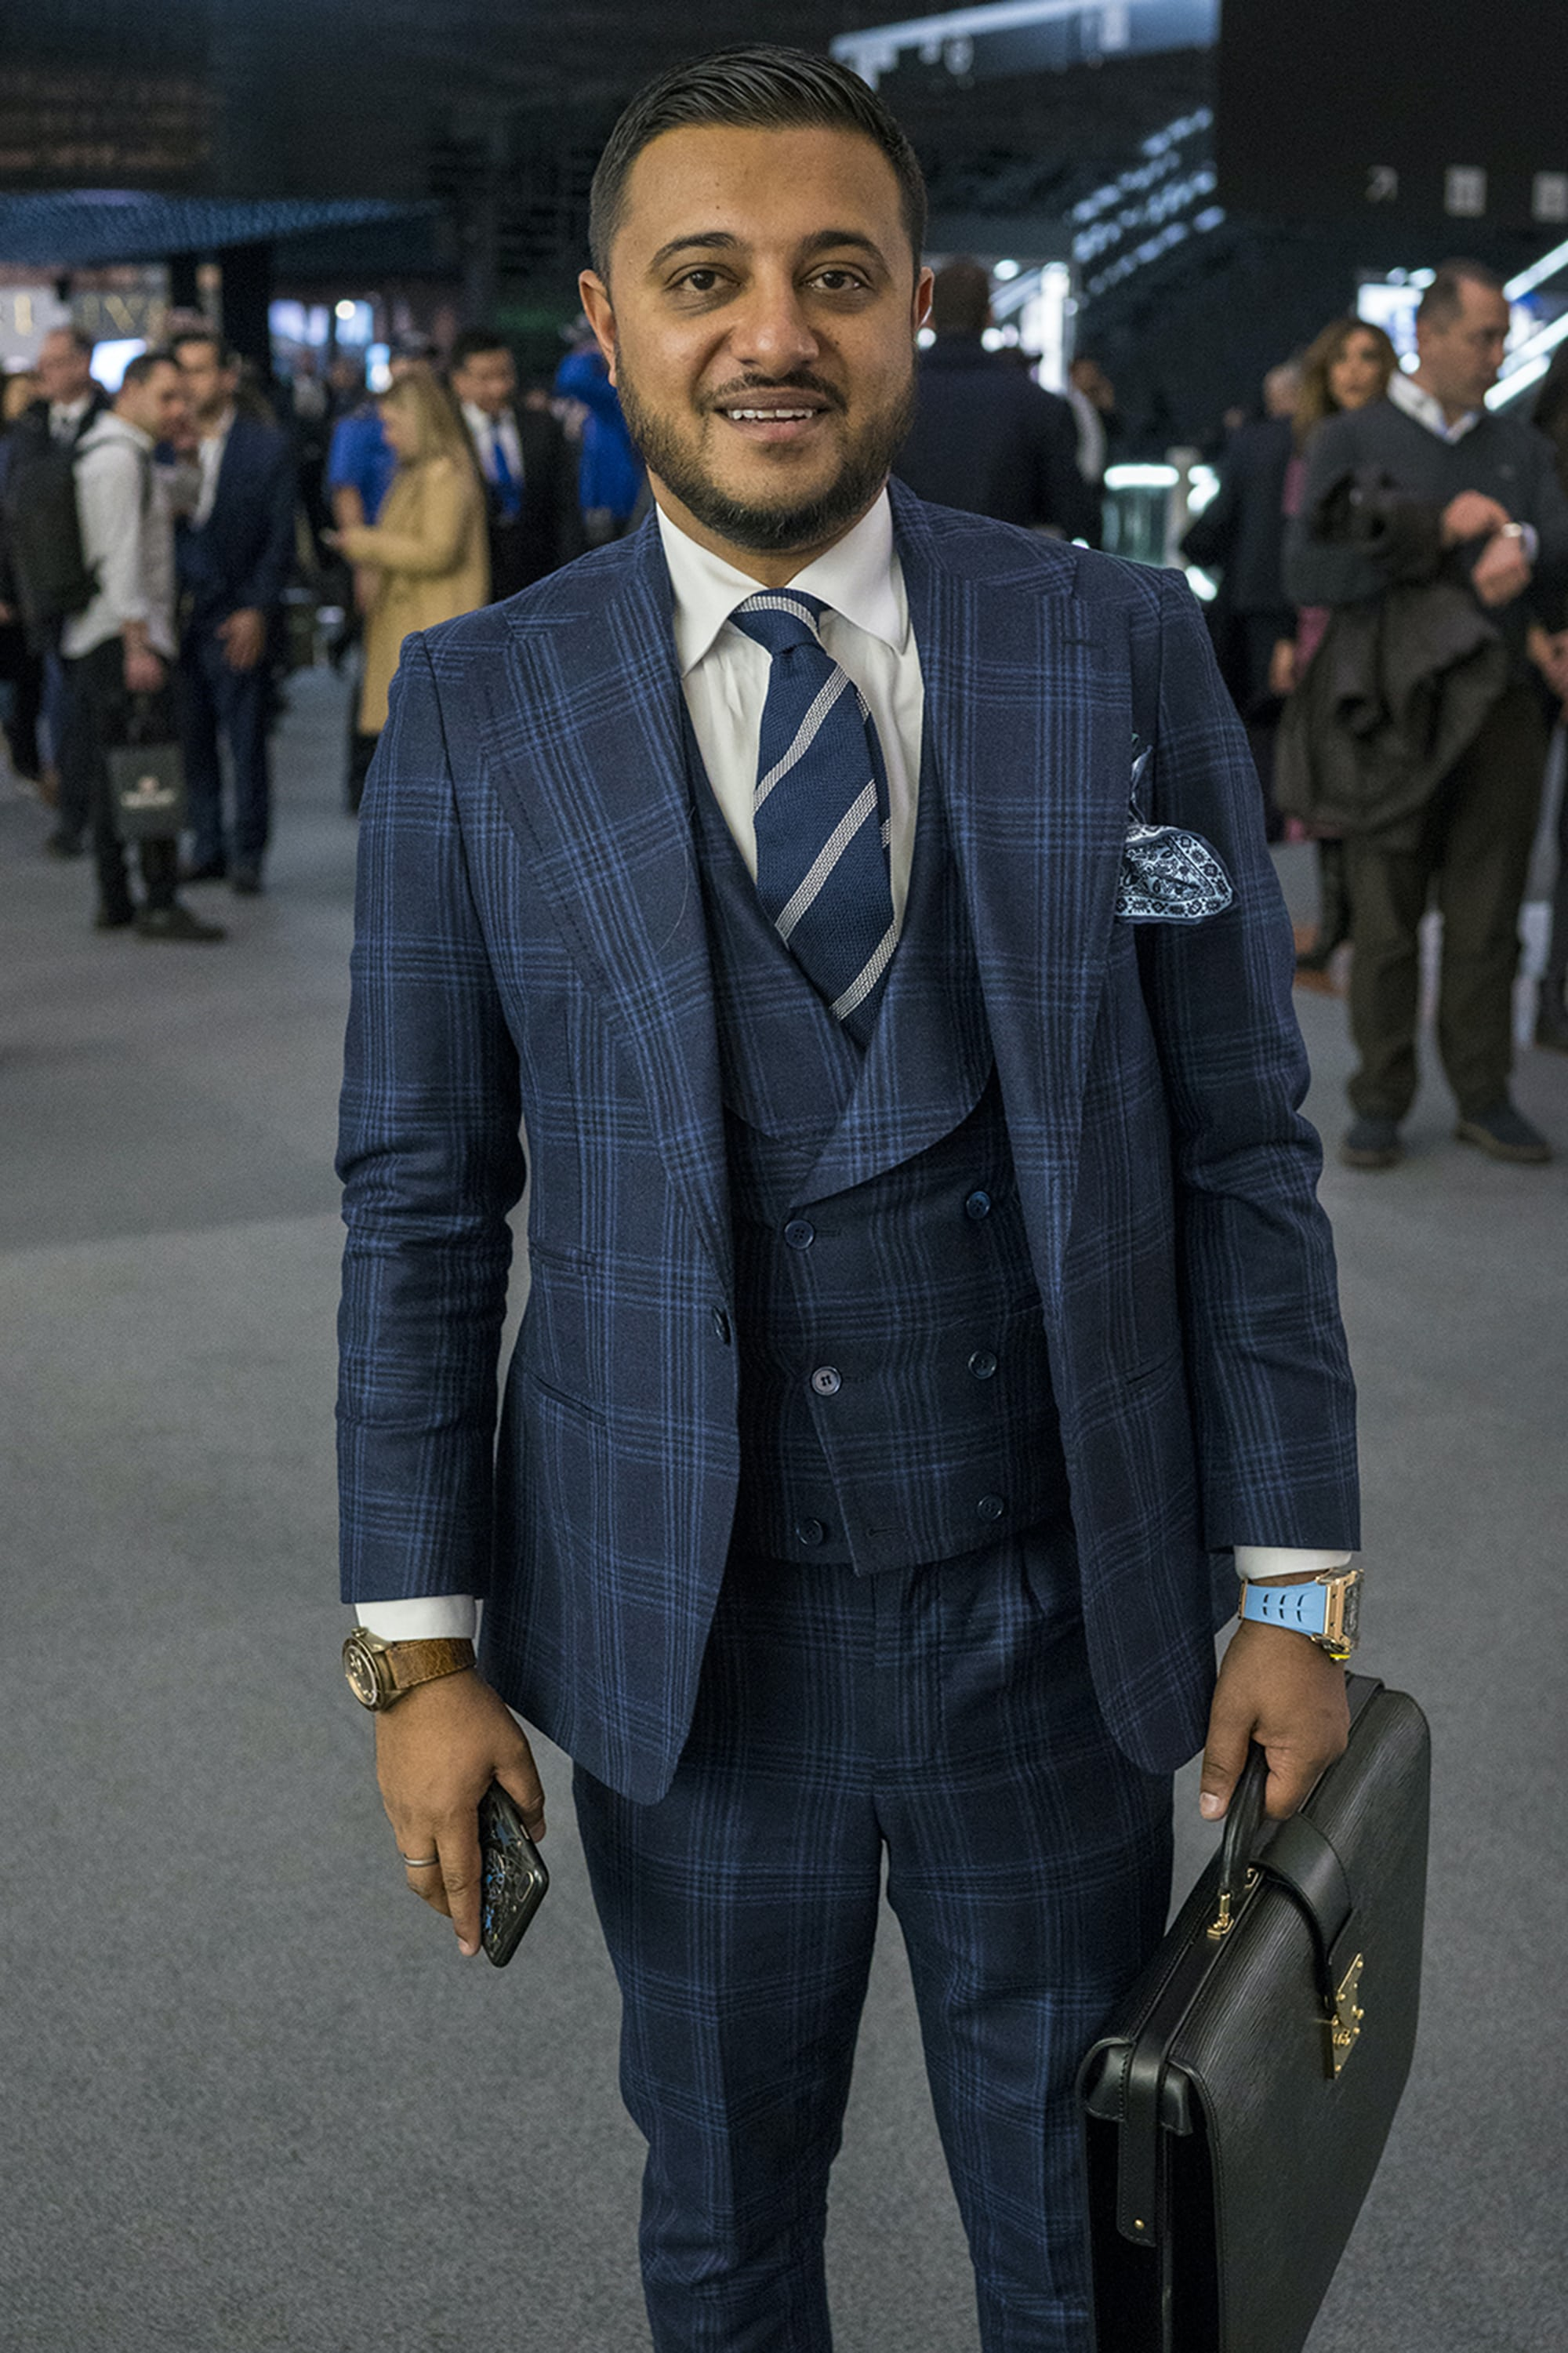 Photo Report: The Fashion And Watches Of Baselworld 2018 Photo Report: The Fashion And Watches Of Baselworld 2018 DSC00740 copy